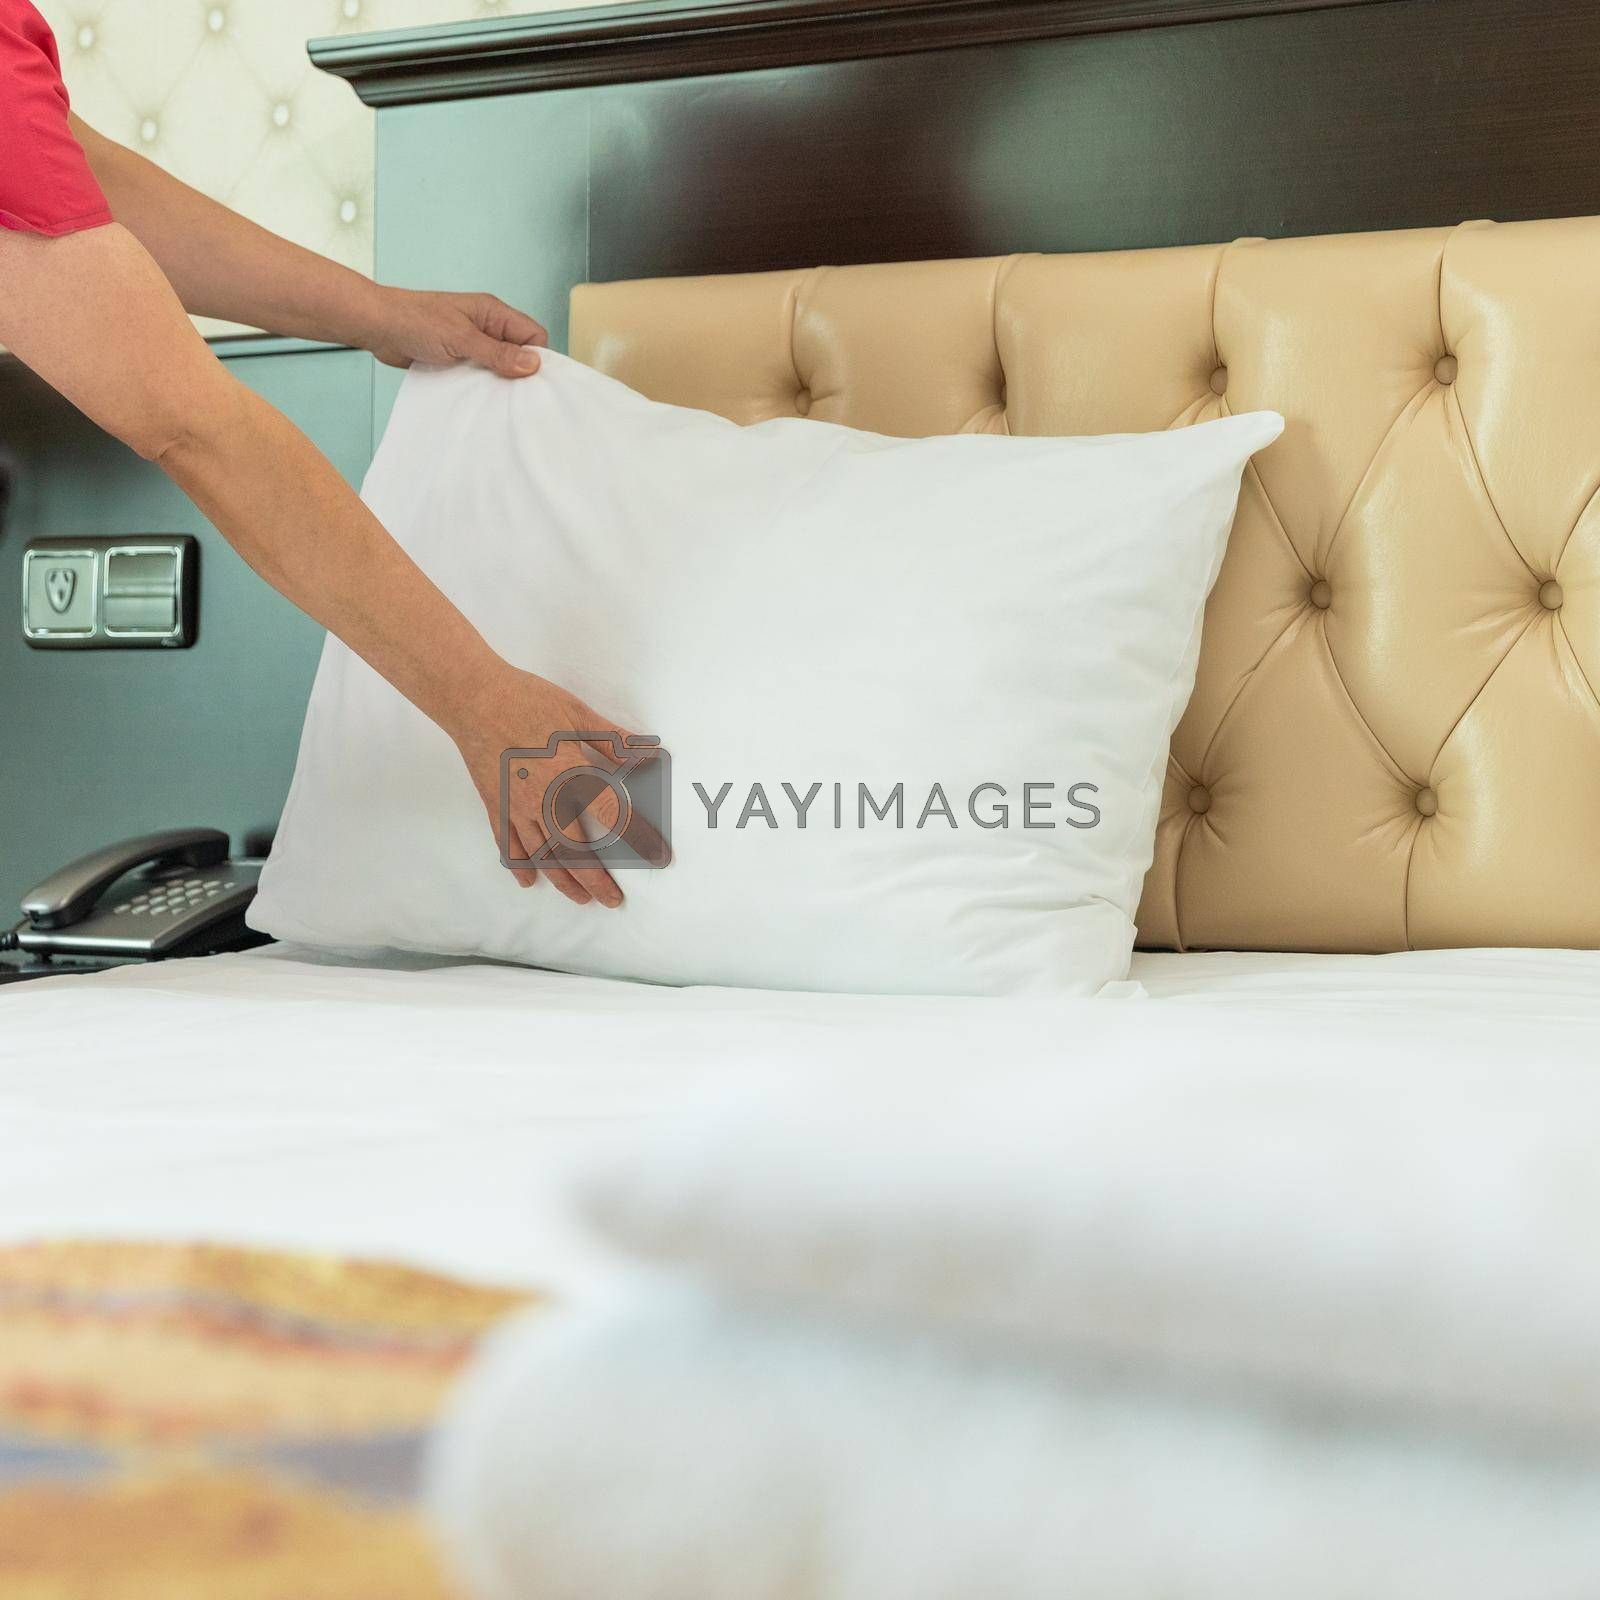 Hotel room service, woman making bed